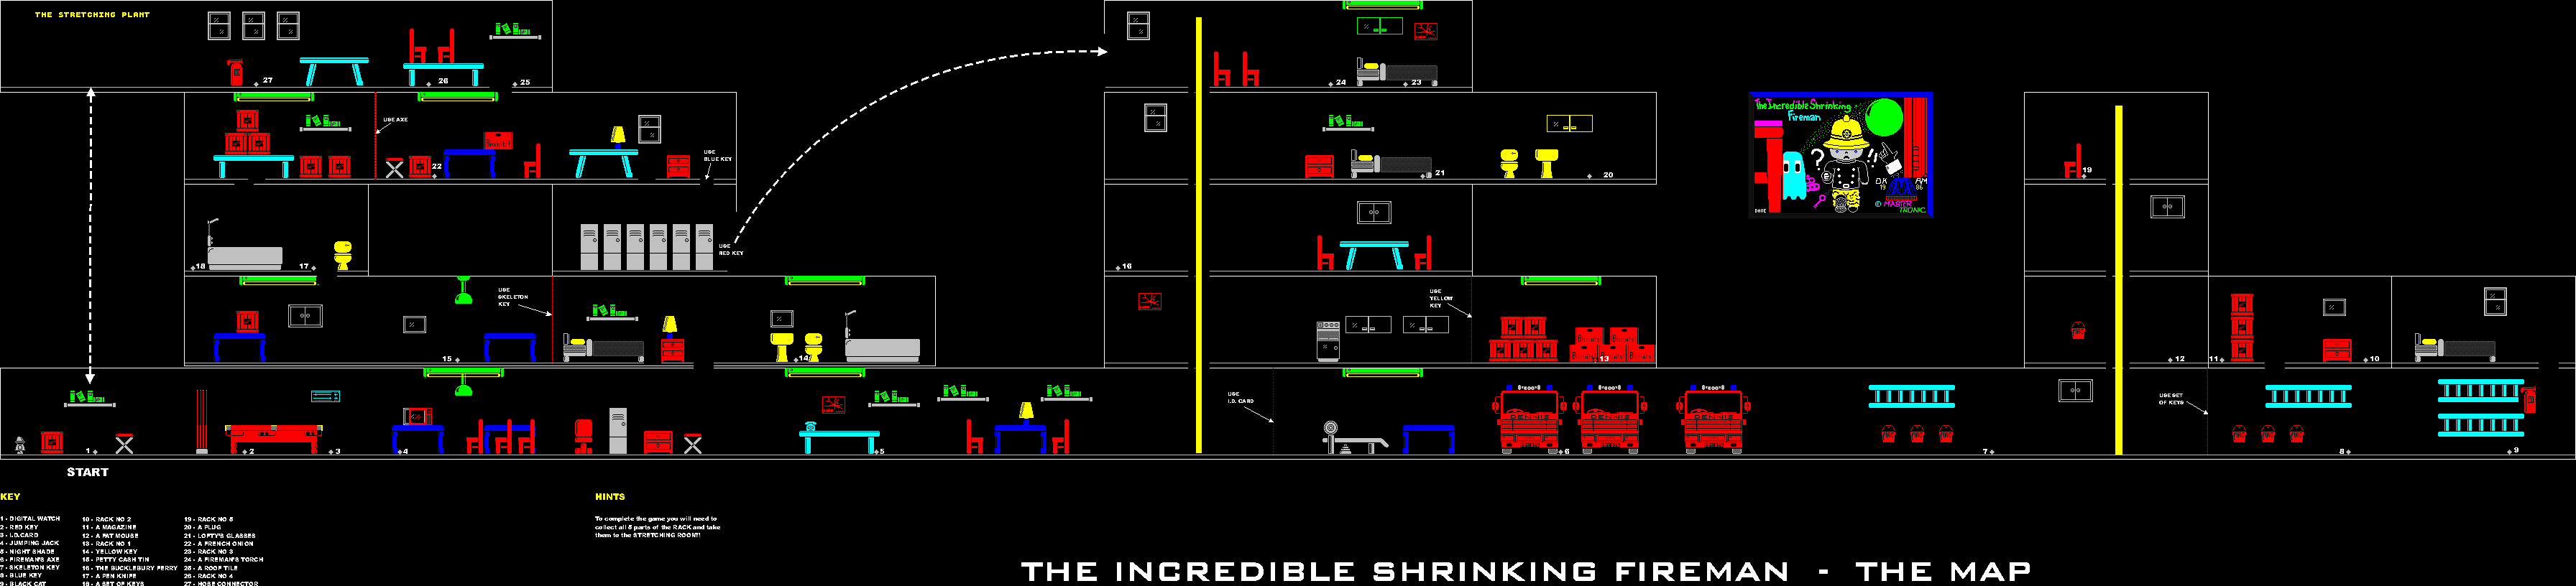 Incredible Shrinking Fireman - The Map